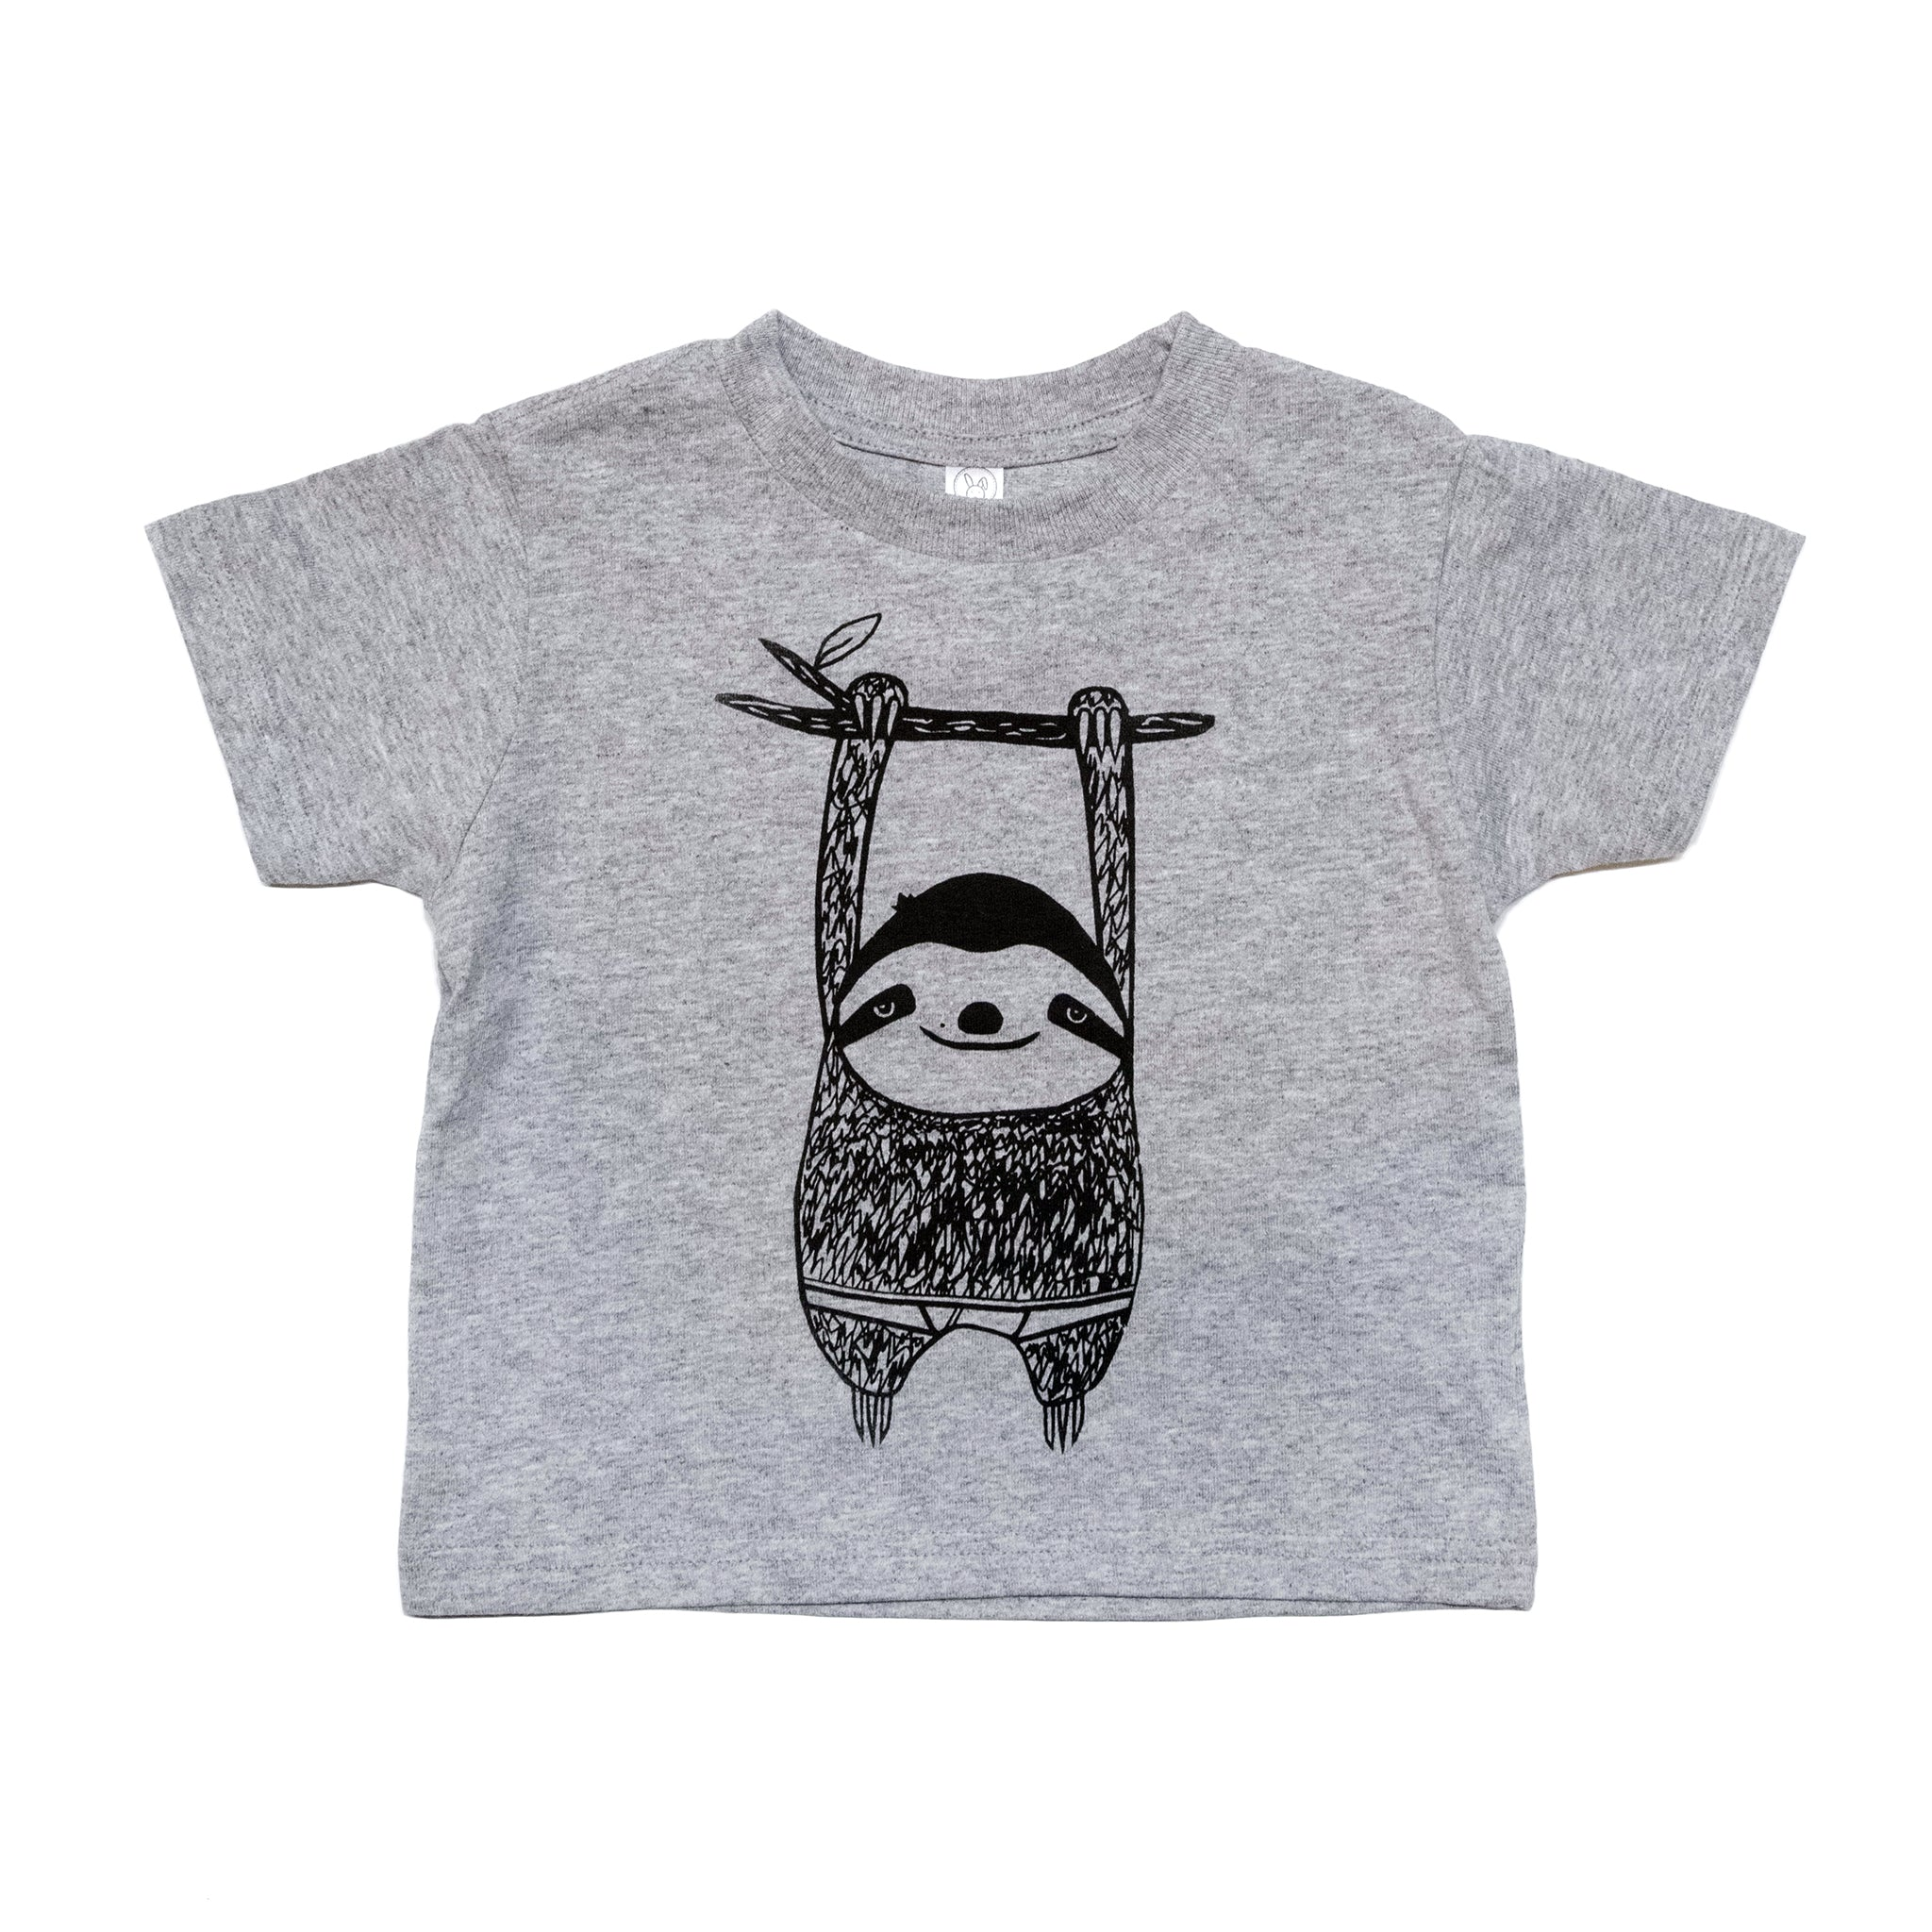 Kids BB Sloth Tshirt